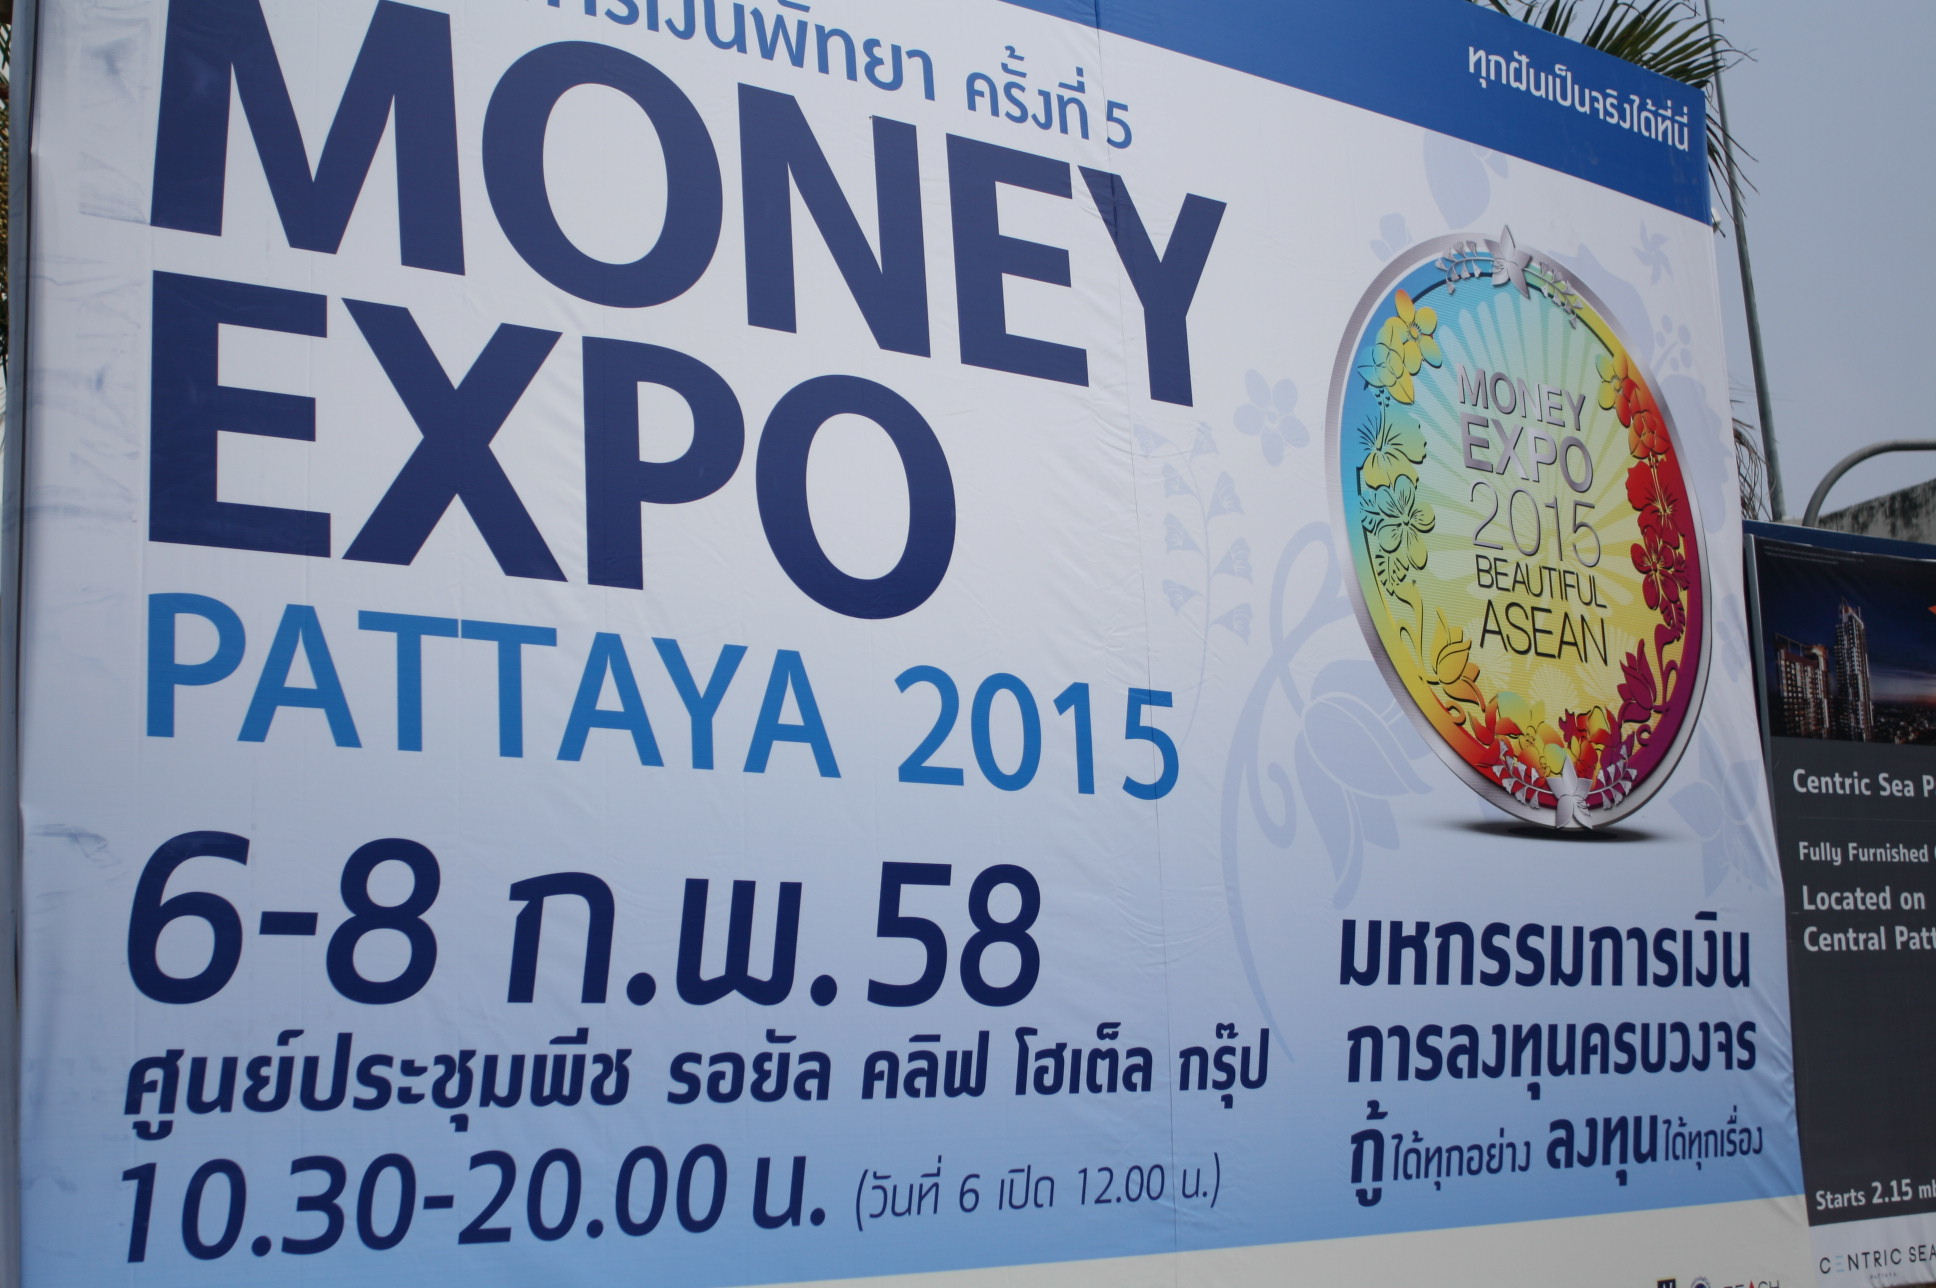 Pattaya Money Expo